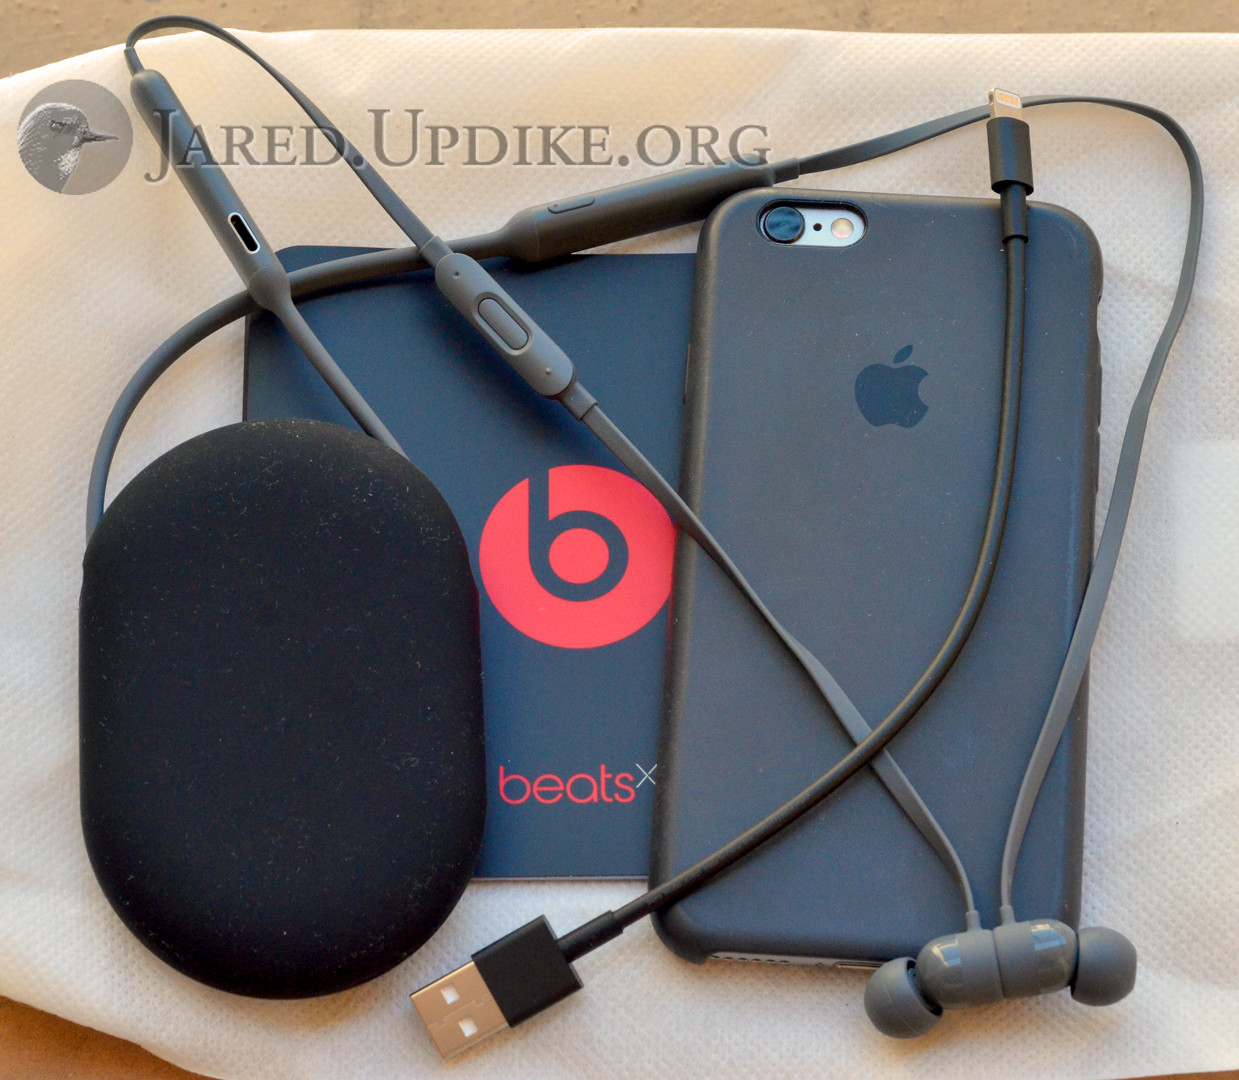 Music Beatsx Review Jareditorial